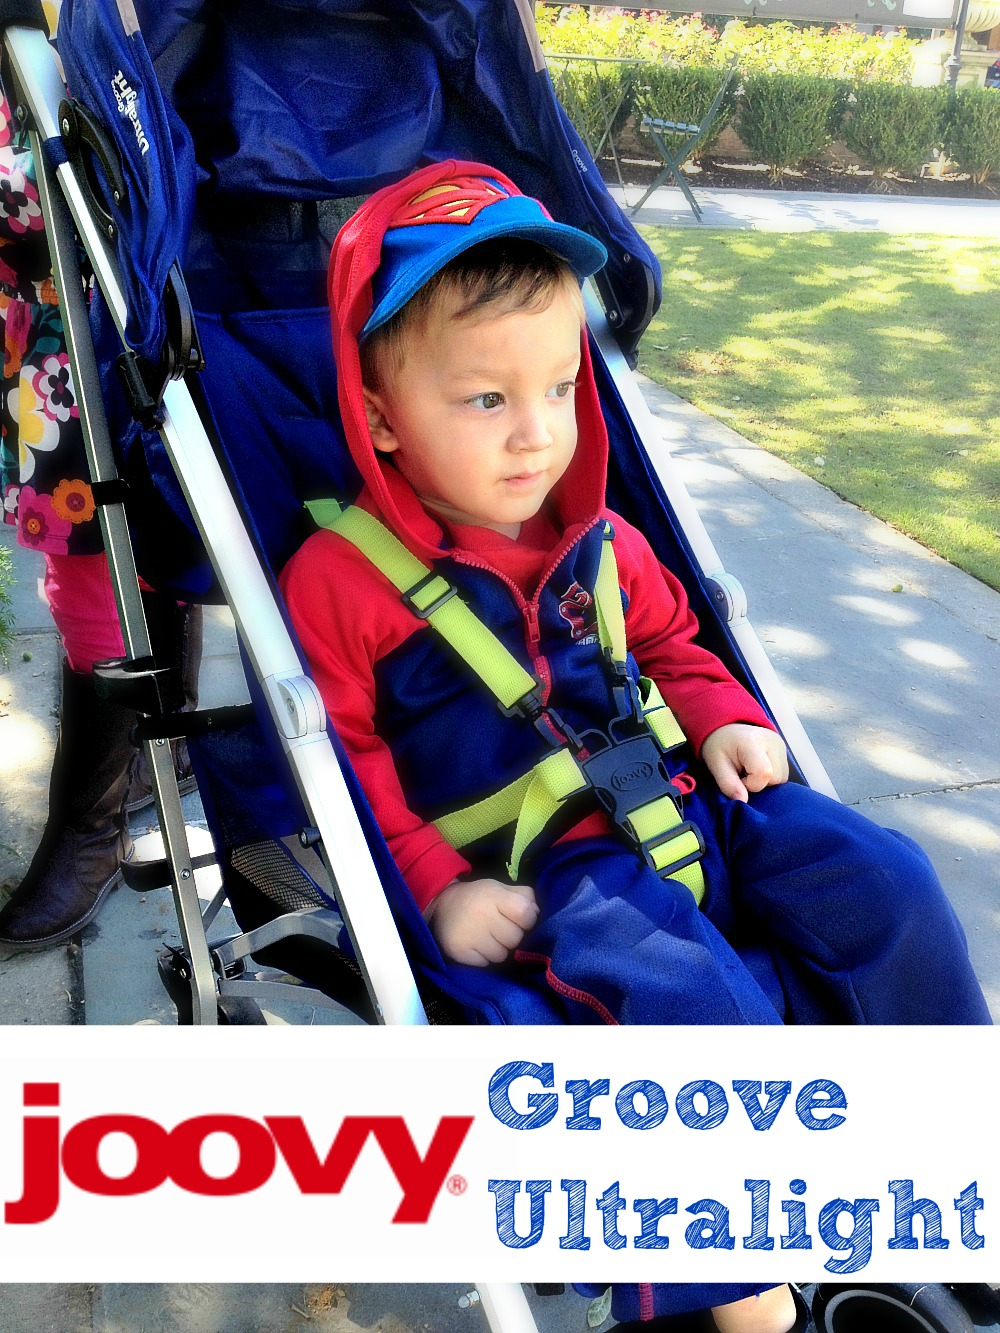 joovygroovereviewstroller